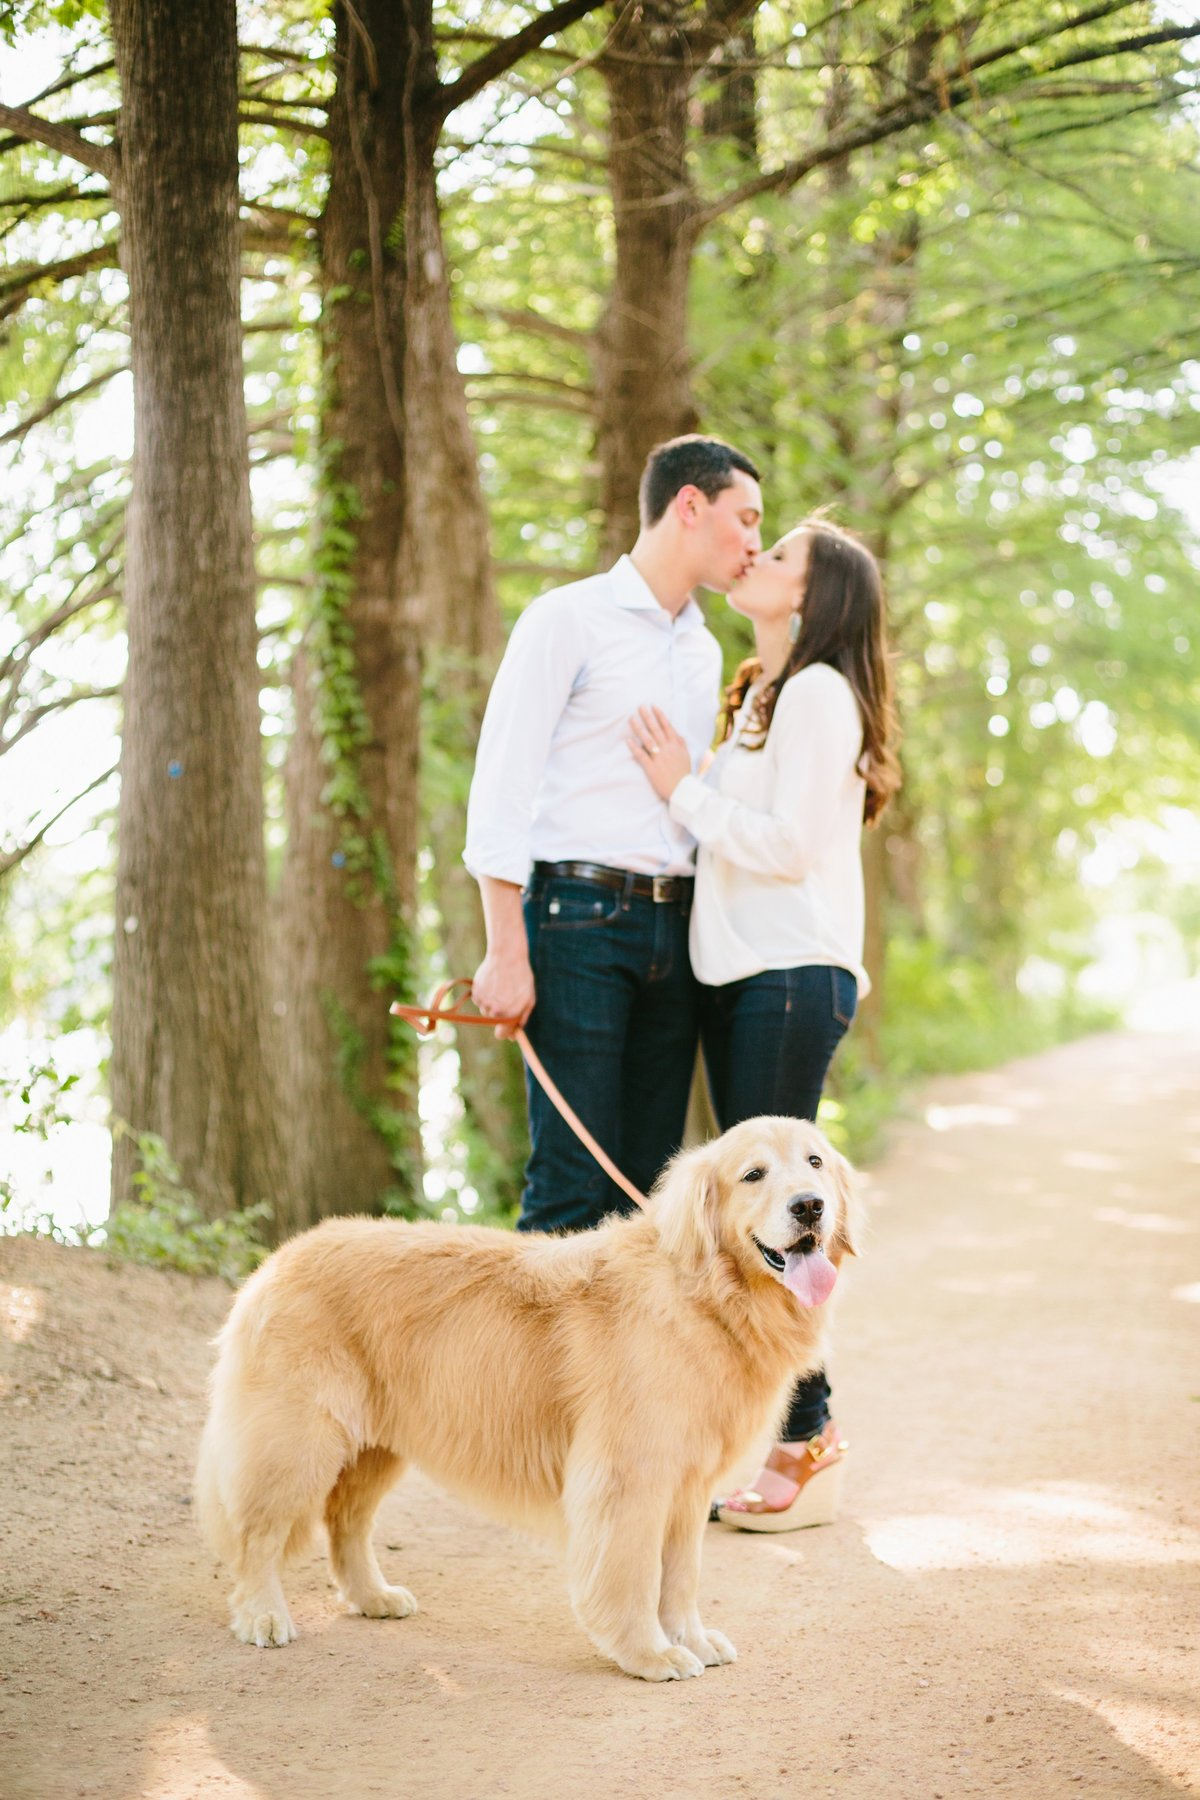 Engagement Photos-Jodee Debes Photography-206